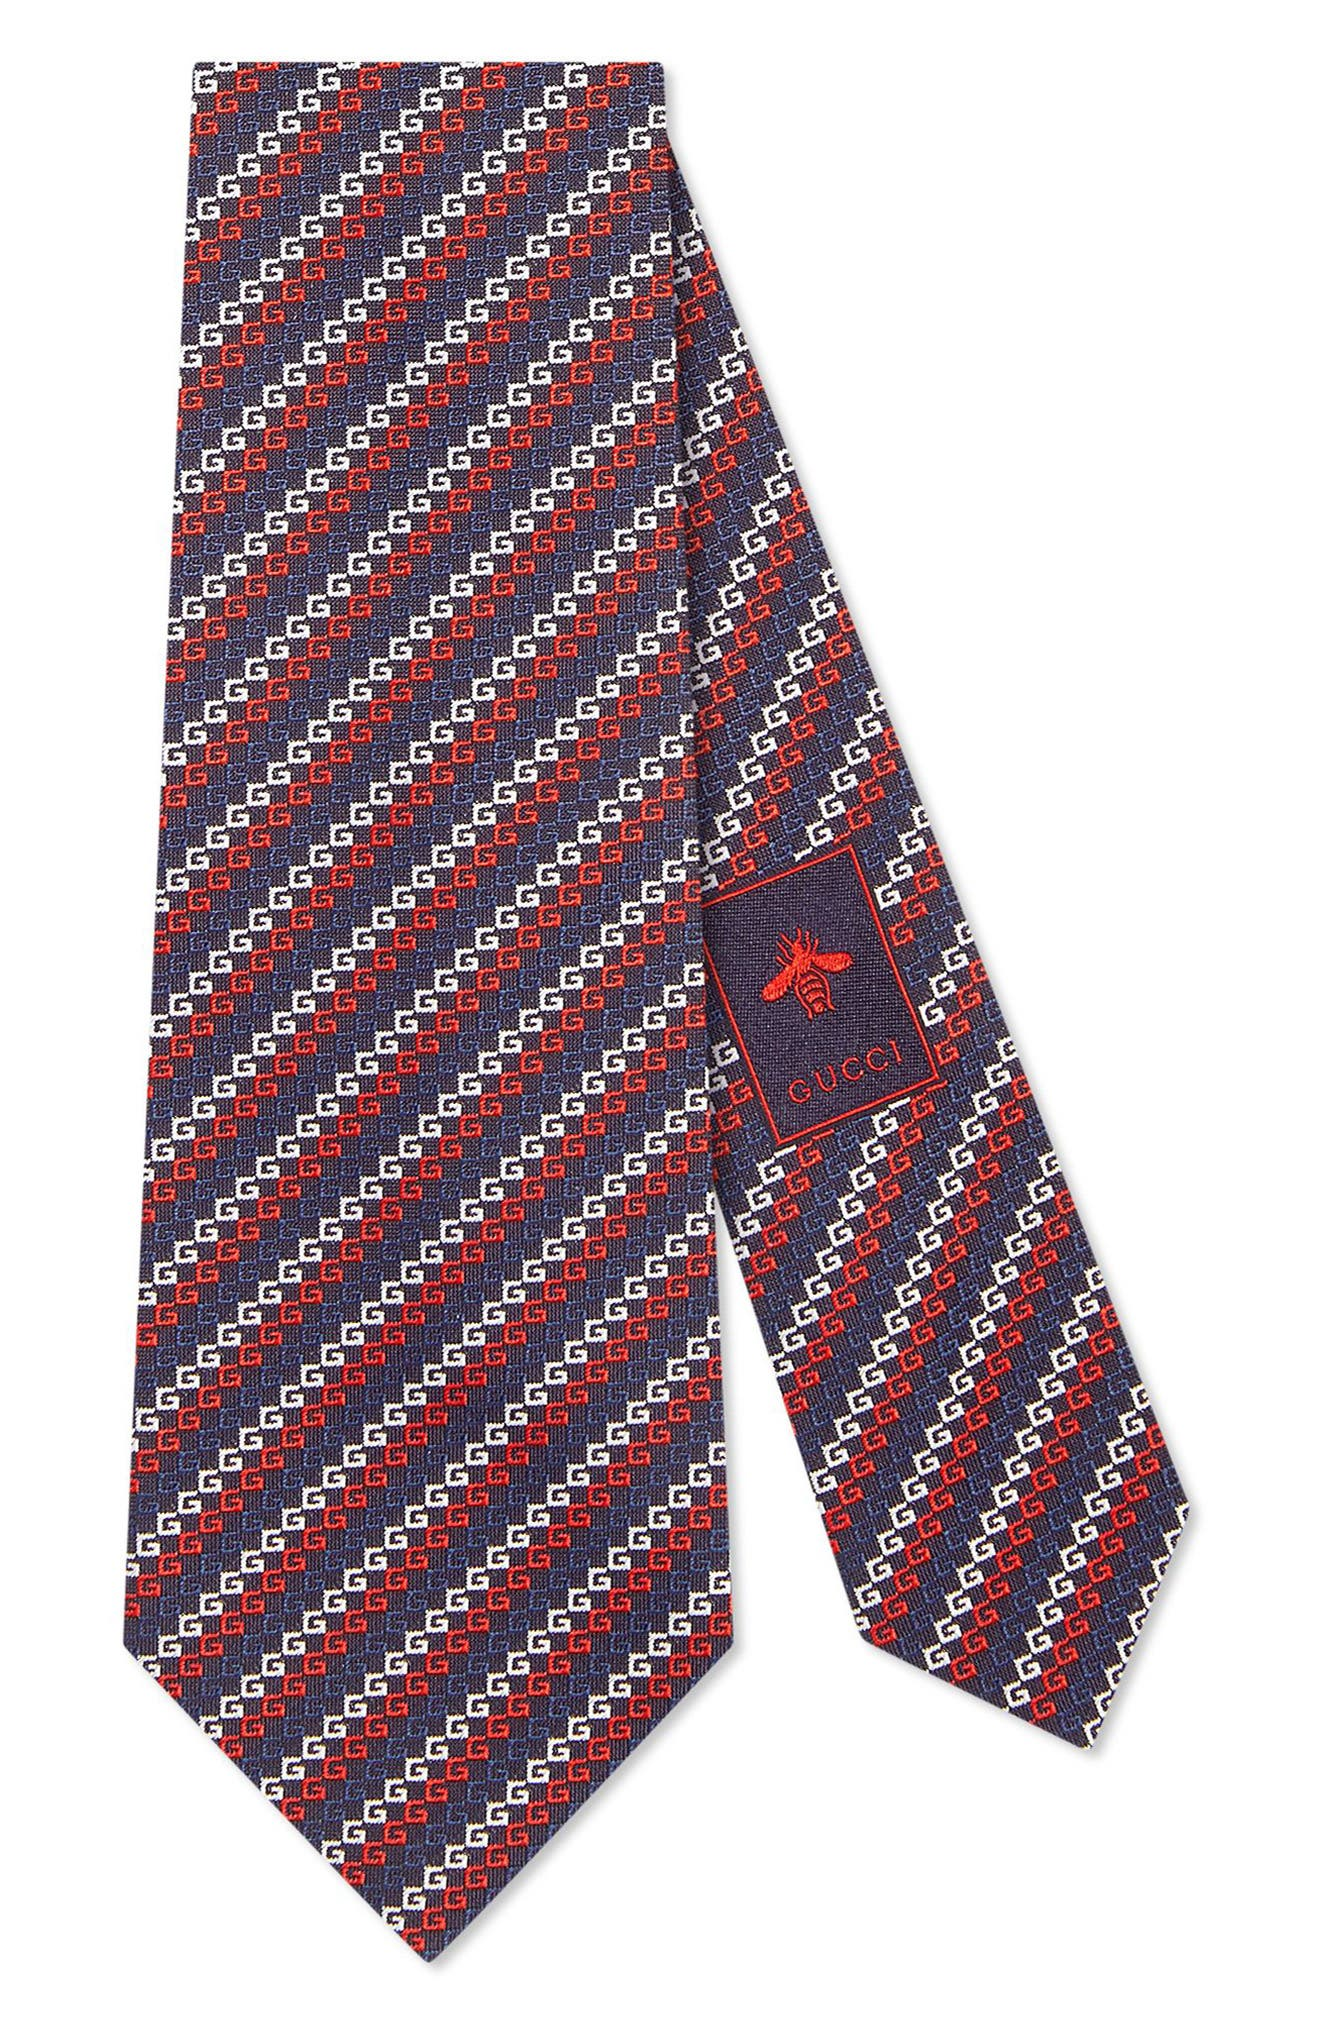 GUCCI Diagonal GG Silk Tie, Main, color, MIDNIGHT BLUE